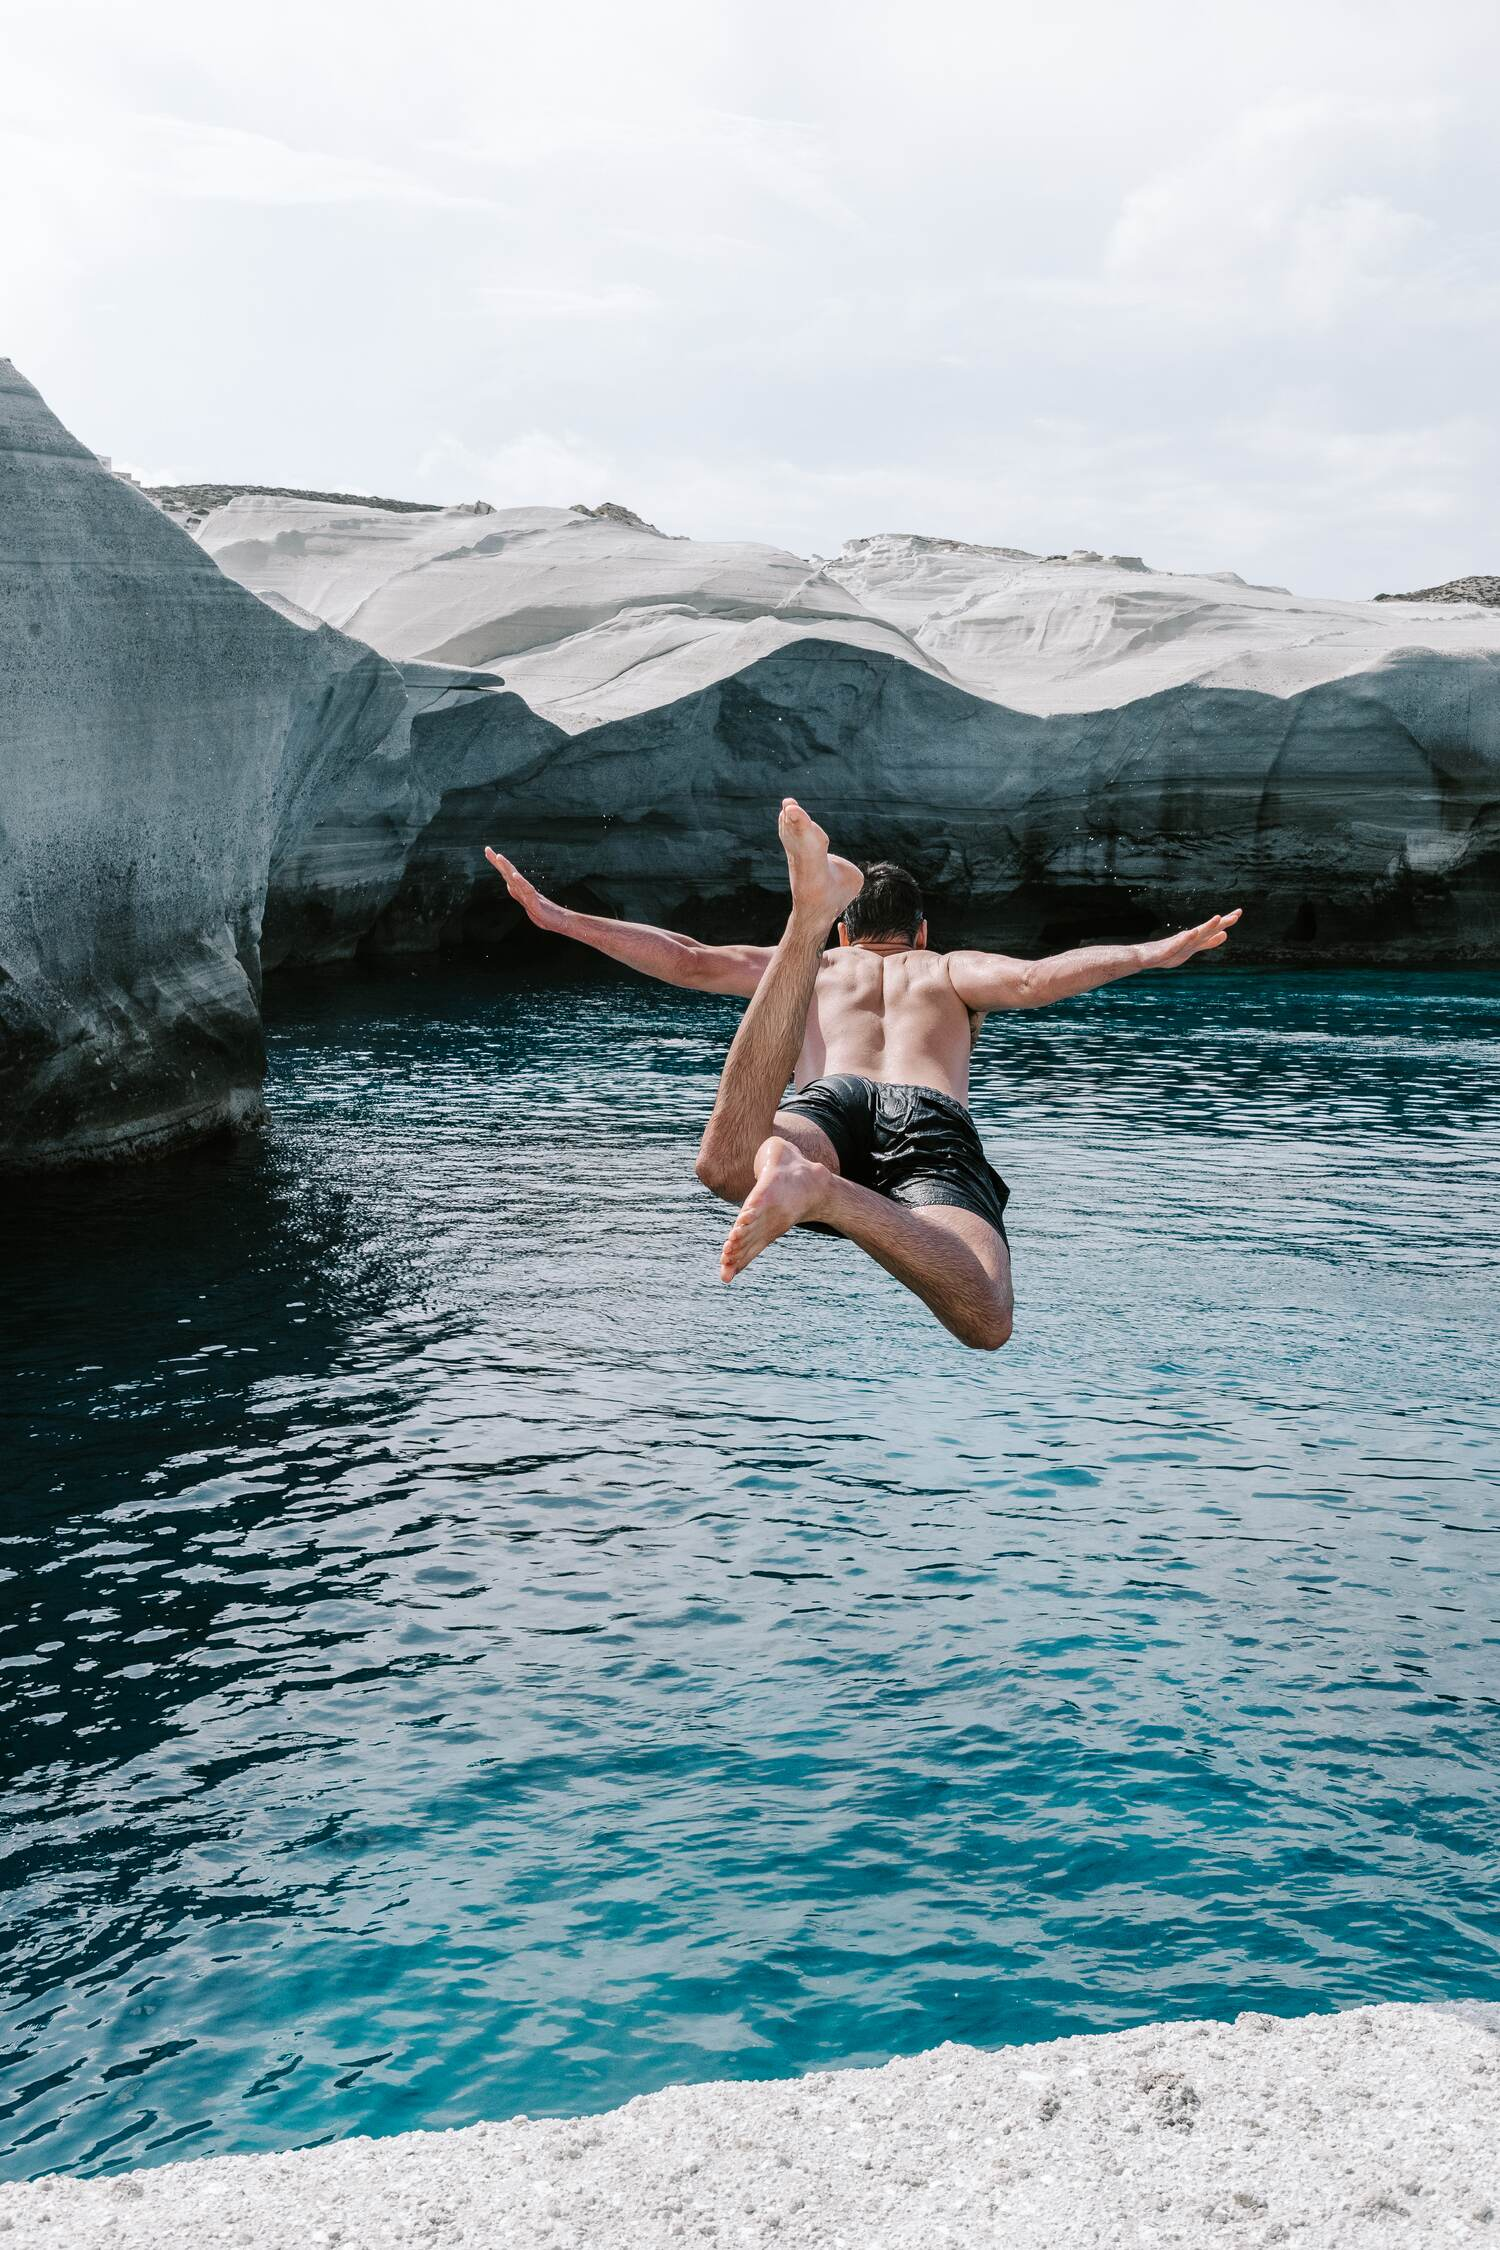 Diving into the magnificent Sarakiniko Beach. One of the best Milos beaches on the greek island Milos